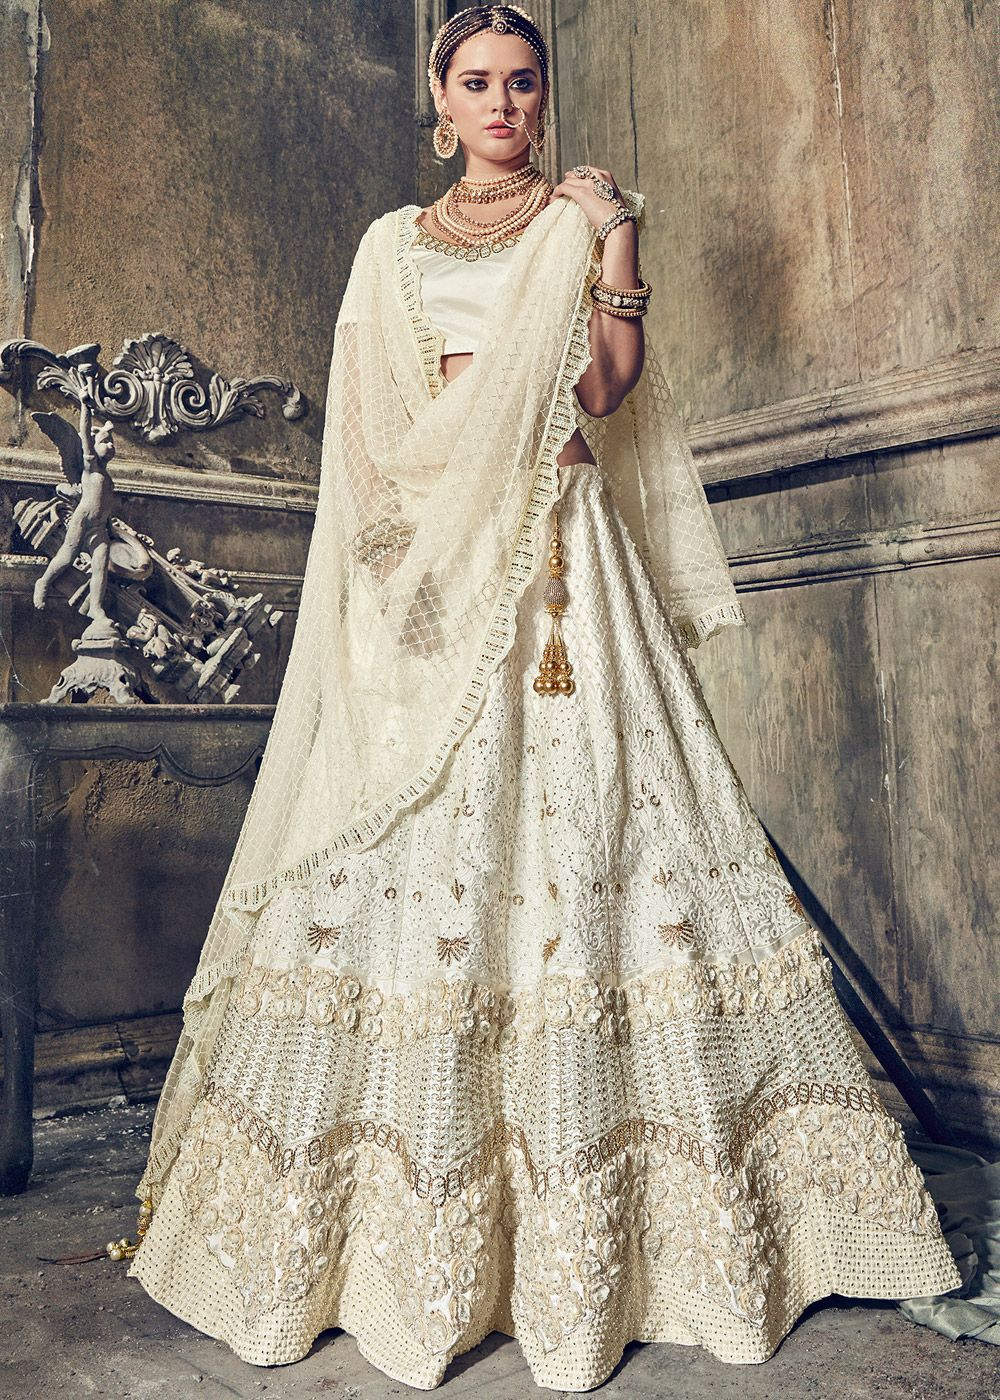 Off white satin bridal lehenga choli with dupatta style